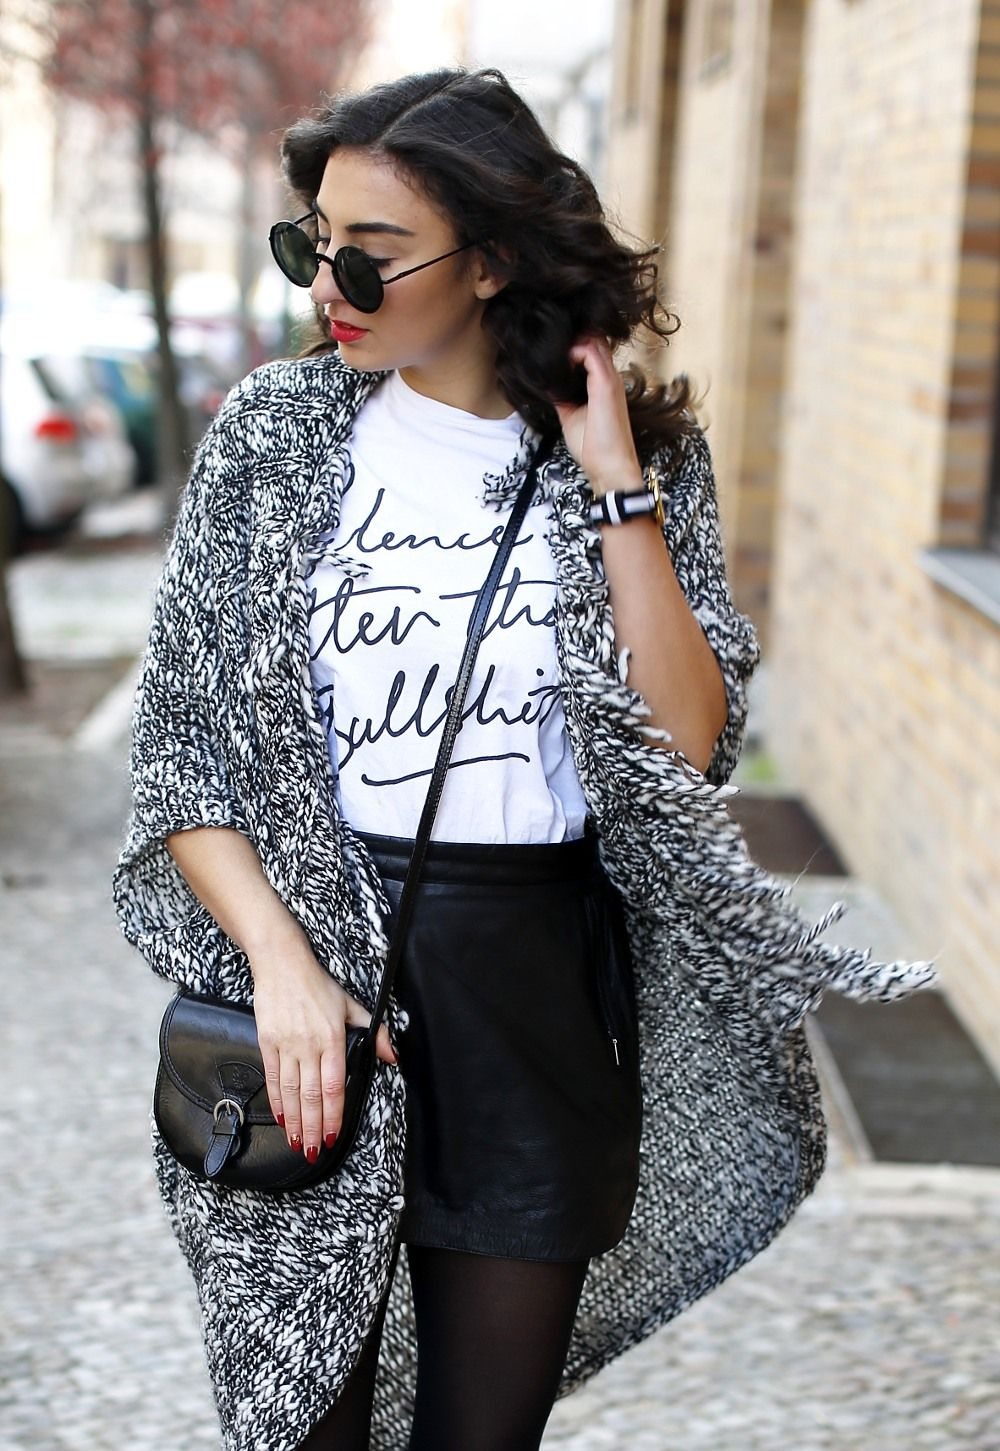 esprit long cardigan outfit black and white look black leather skirt  streetstyle berlin look motto shirt blogger samieze fashionblogger lookbook  RED ... 7fed7f789